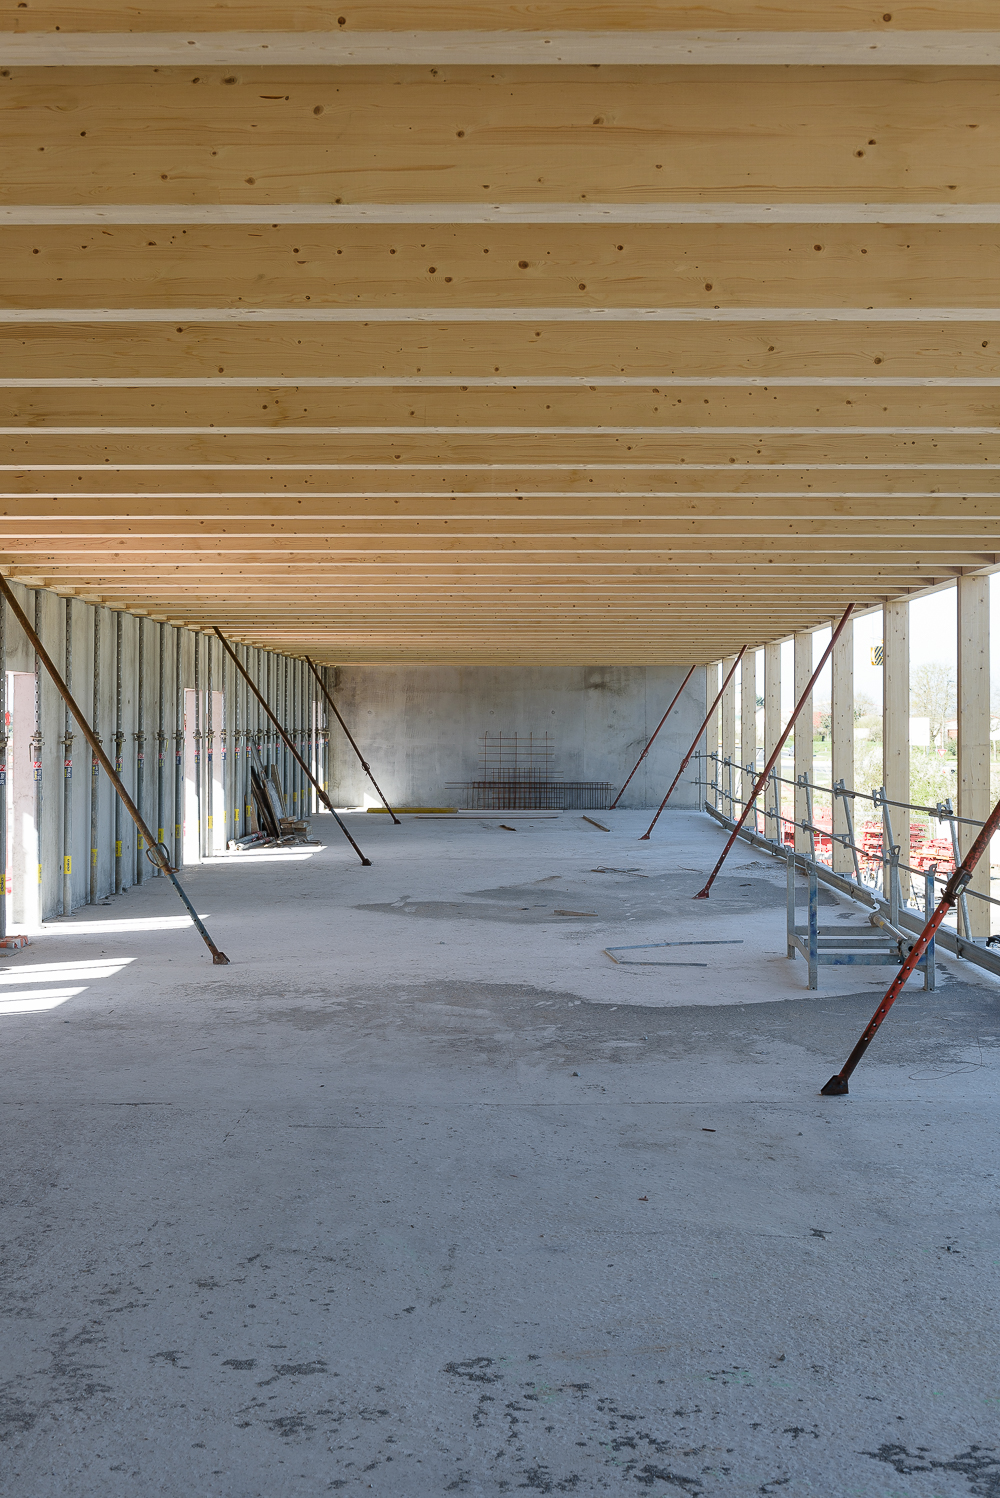 photographe d'architecture ©INTERVALphoto : Lycée Polyvalent, Région Pays de Loire, AIA architecte, Chantier, Nort sur Erdre (44) 5/22 ©INTERVAL photo